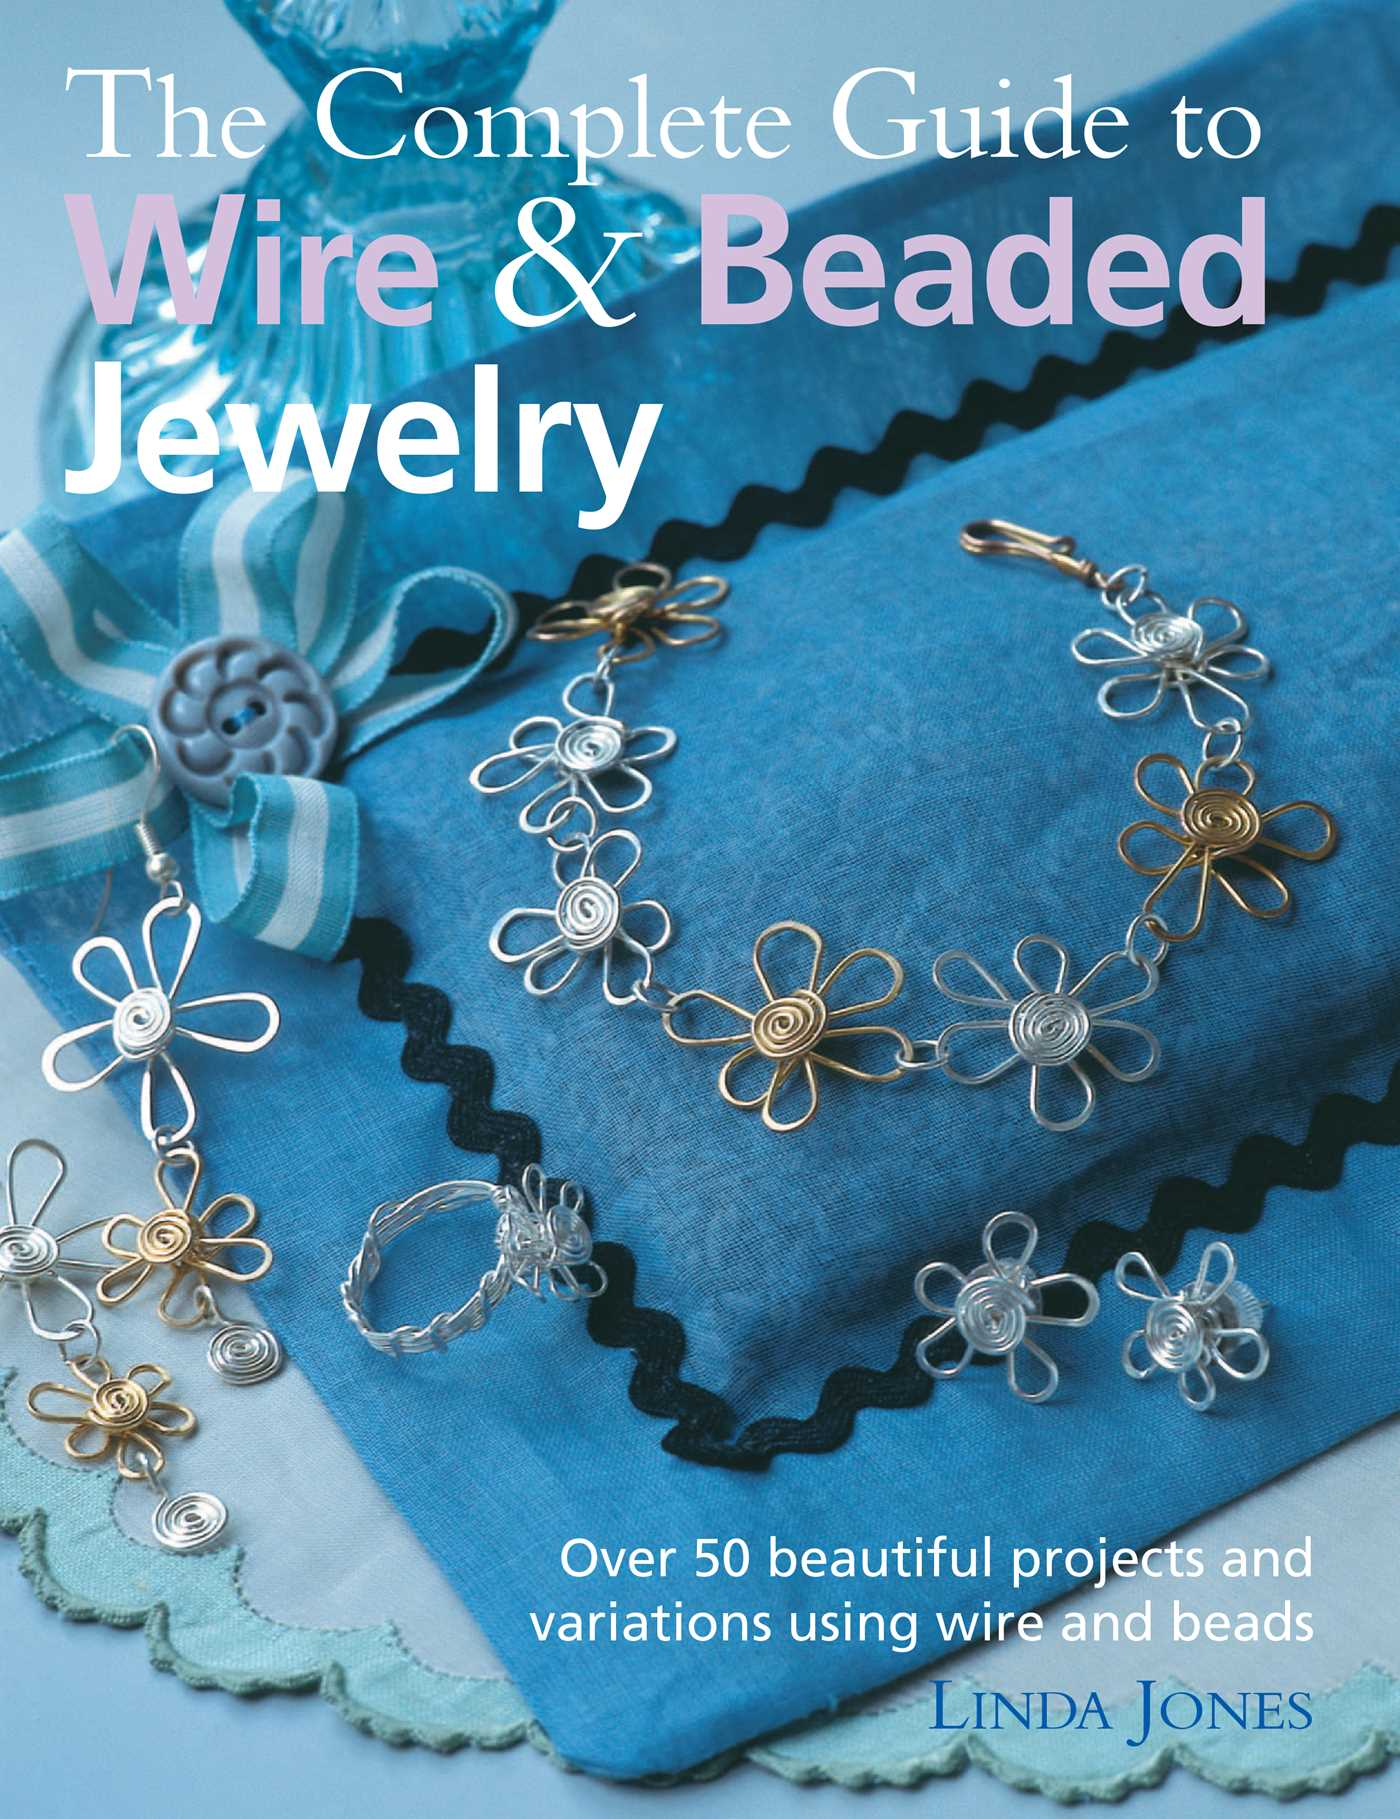 The Complete Guide to Wire & Beaded Jewelry | Book by Linda Jones ...